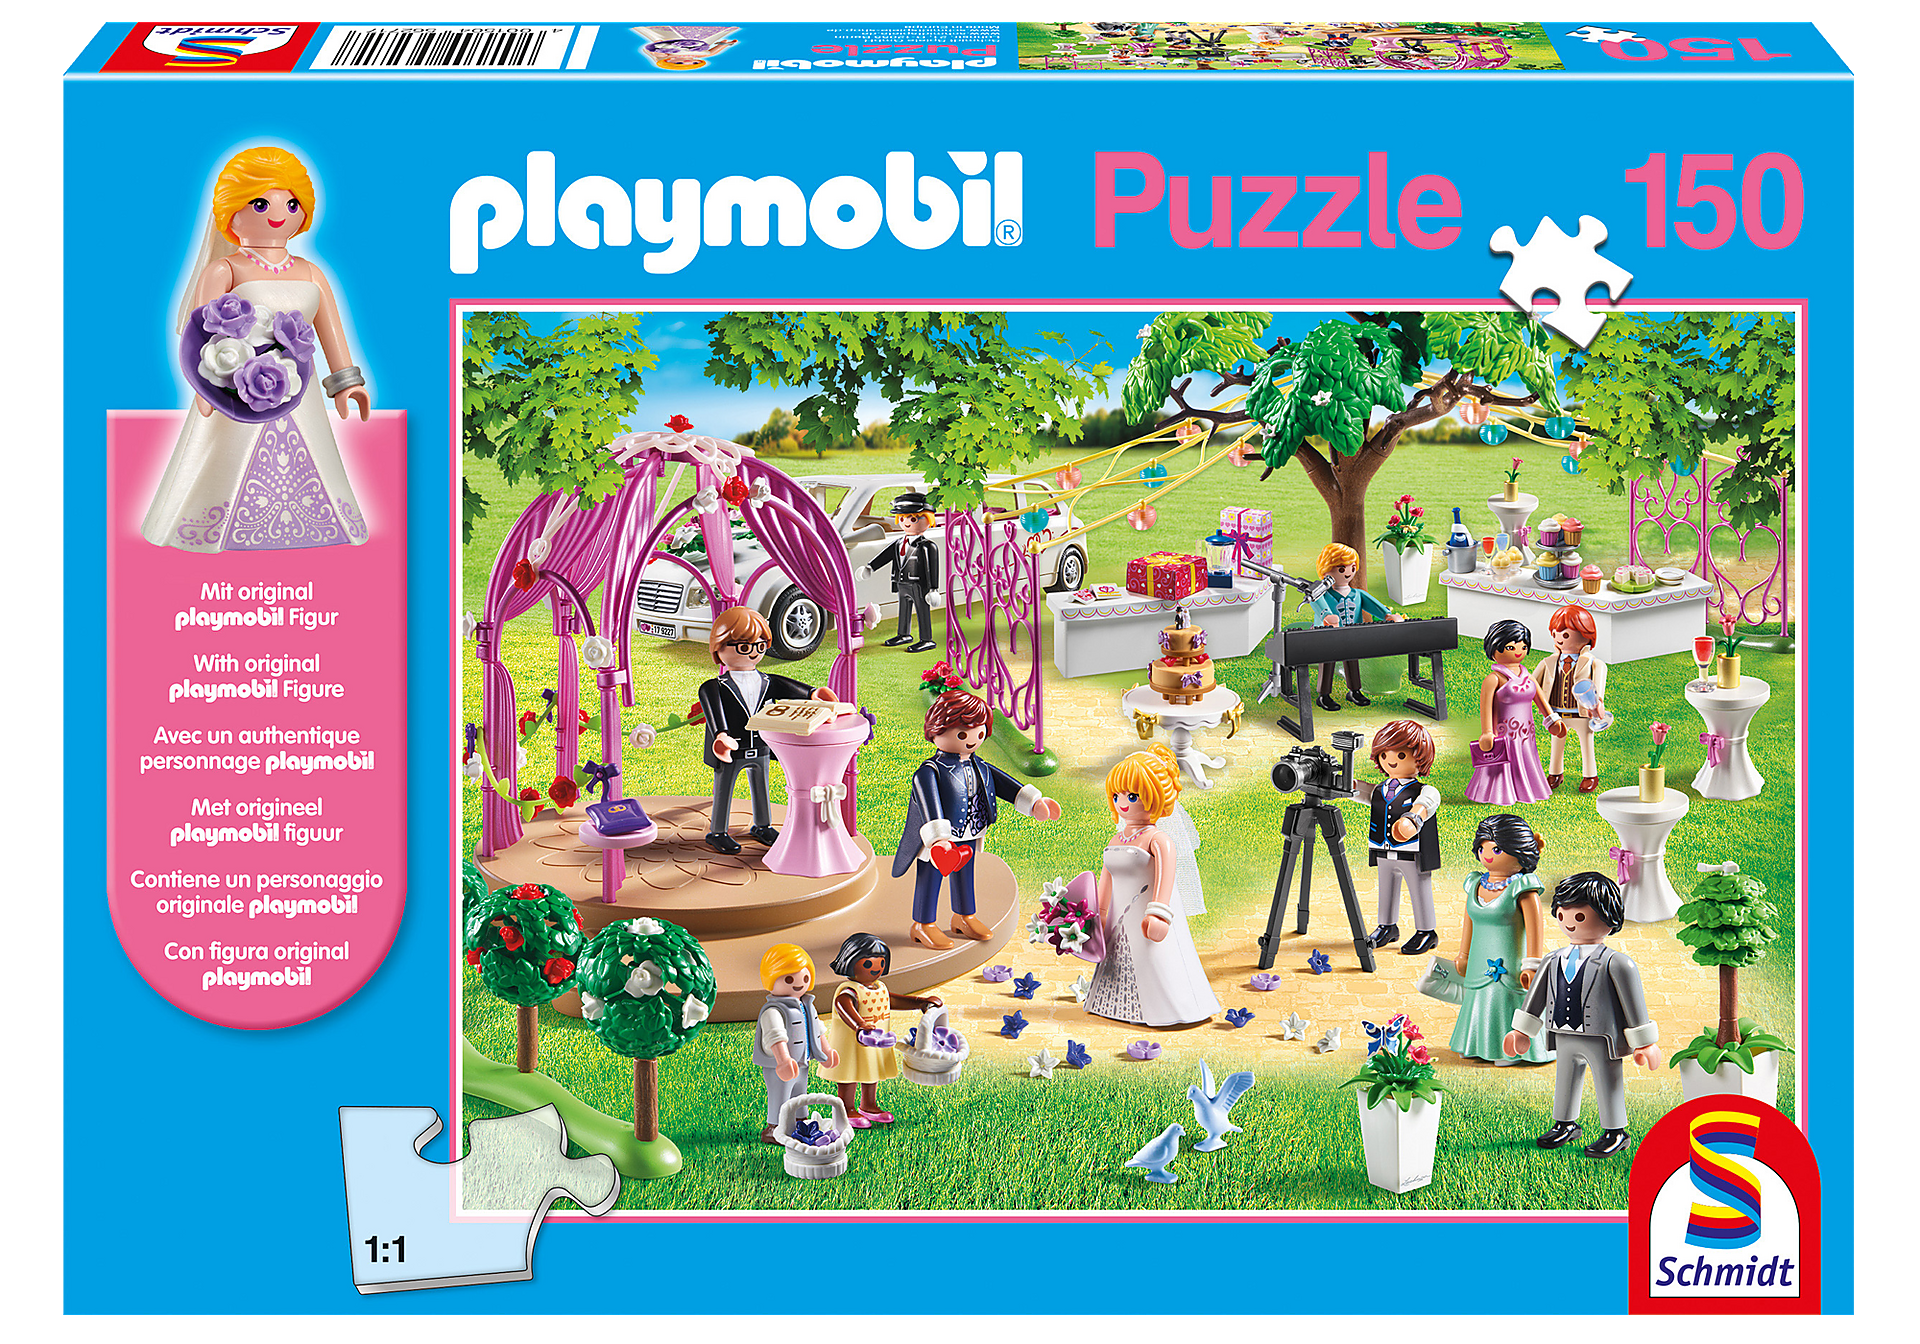 http://media.playmobil.com/i/playmobil/80087_product_detail/Puzzle Hochzeit